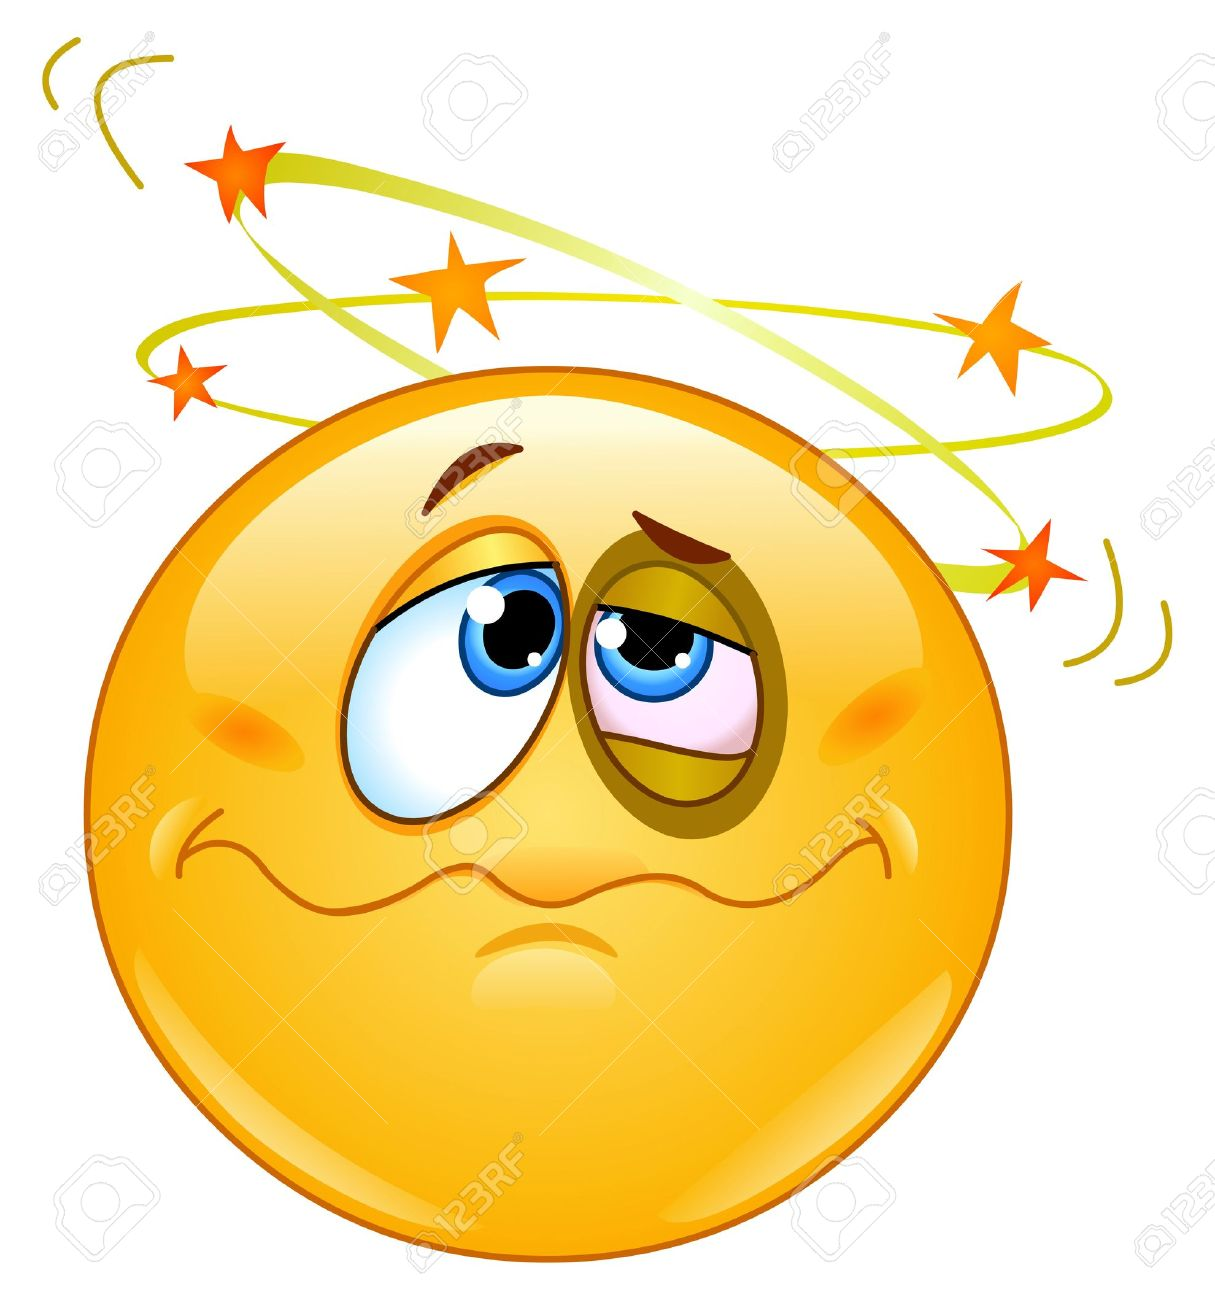 Beat Up Emoticon Seeing Stars Above His Head Royalty Free Cliparts